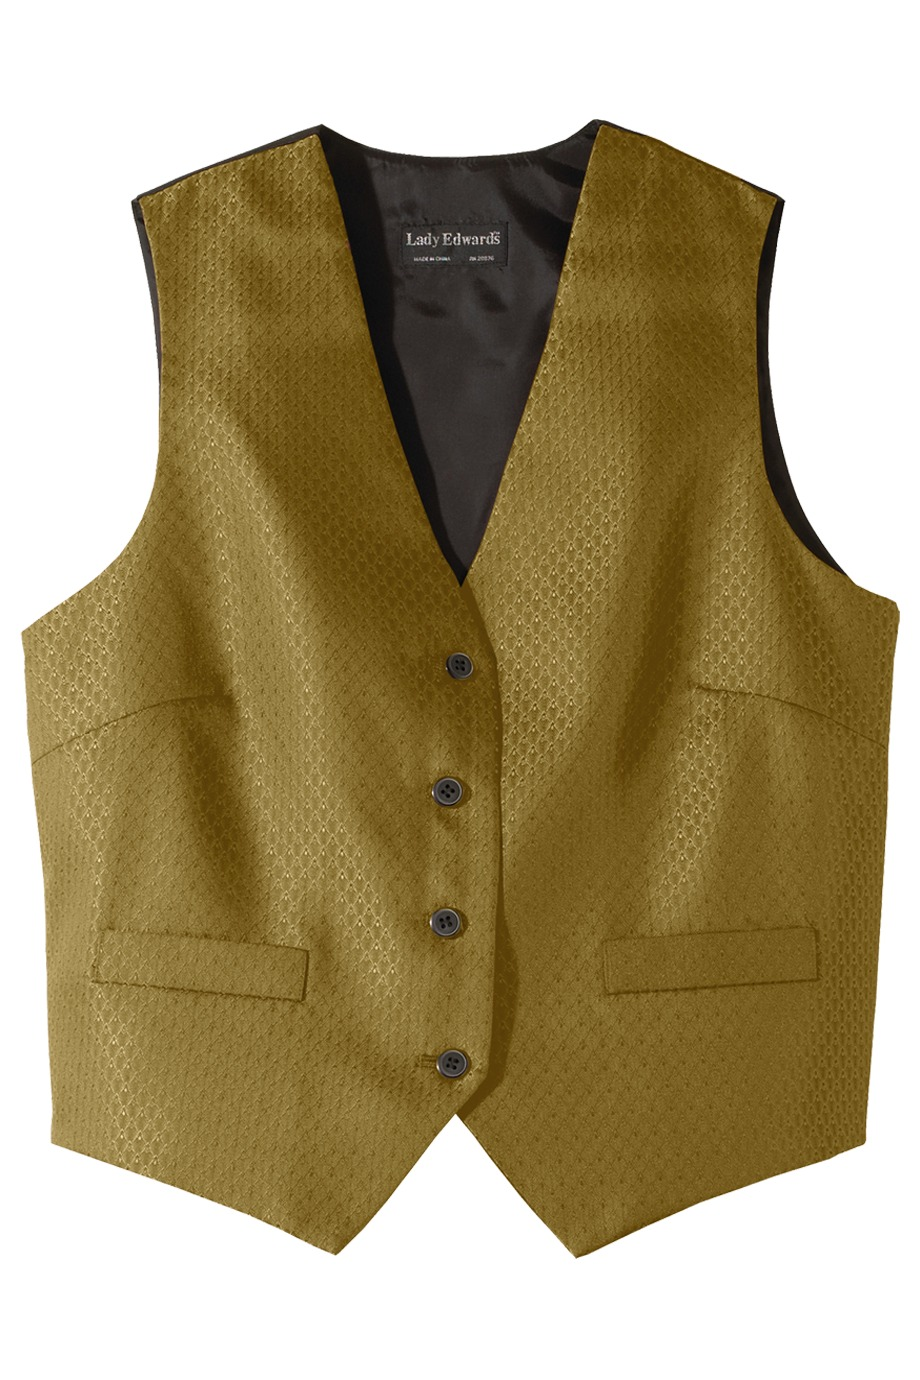 Edwards Garment 7390 - Women's Diamond Brocade Vest